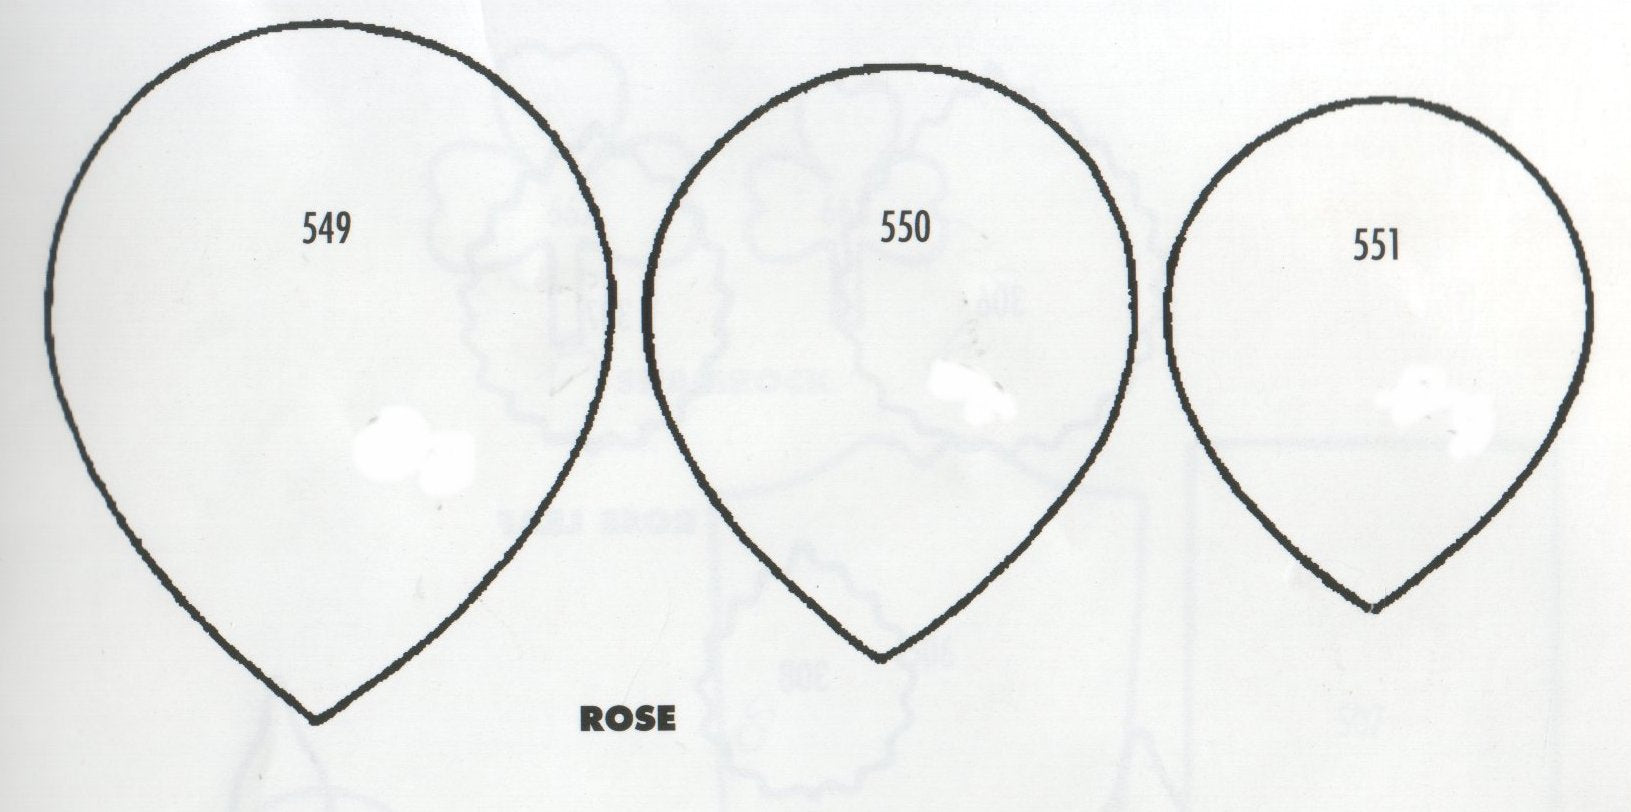 Rose Petals - set of 3 549/550/551 (60mm, 50mm, 45mm)  TinkerTech Two Cutters